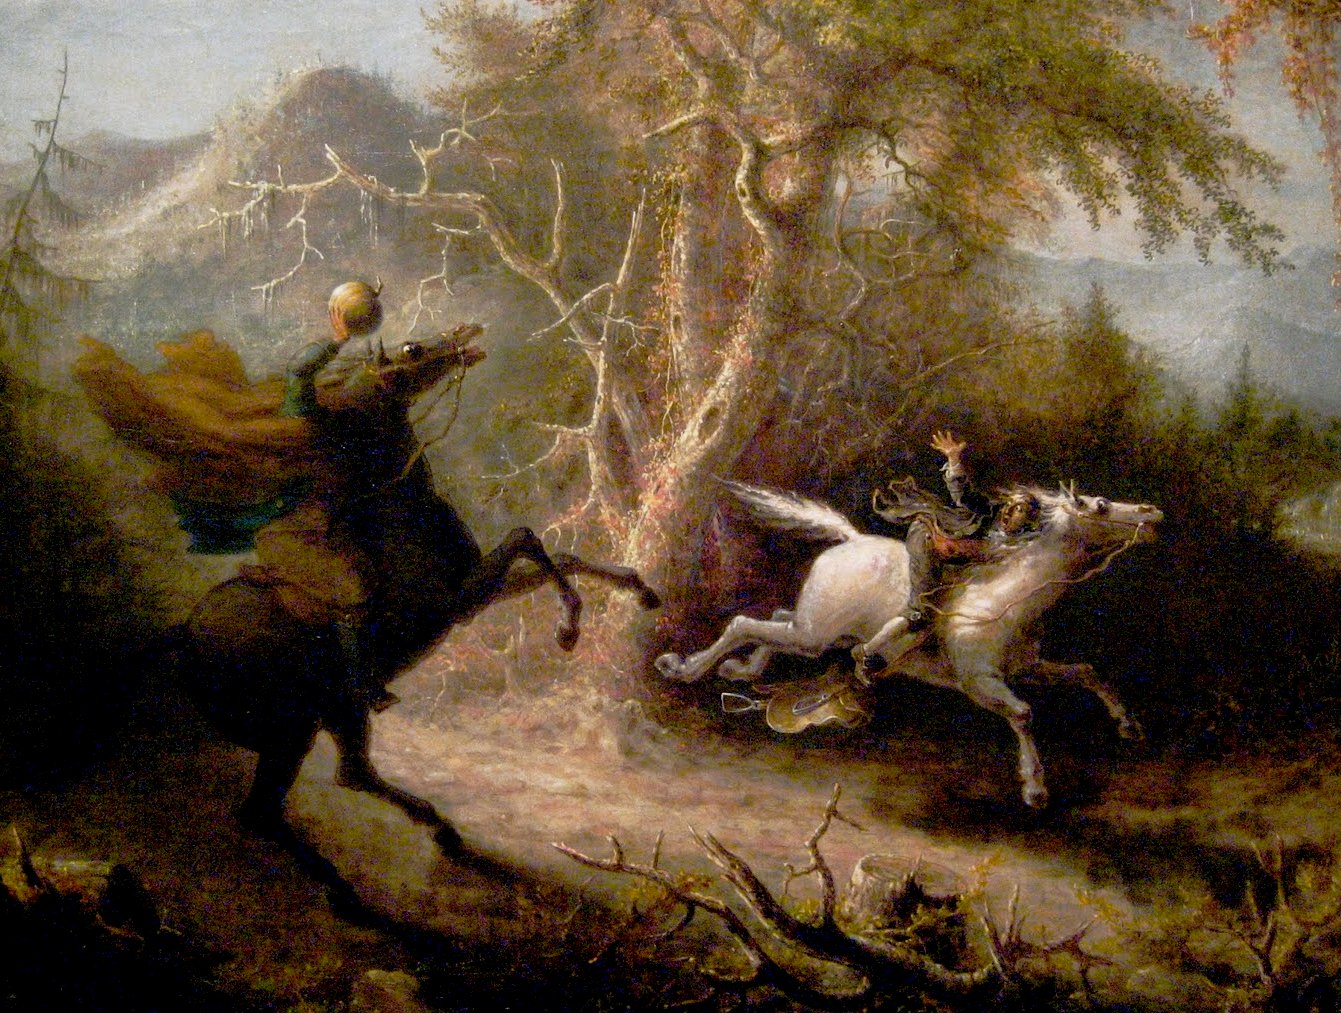 The Story Behind Sleepy Hollow